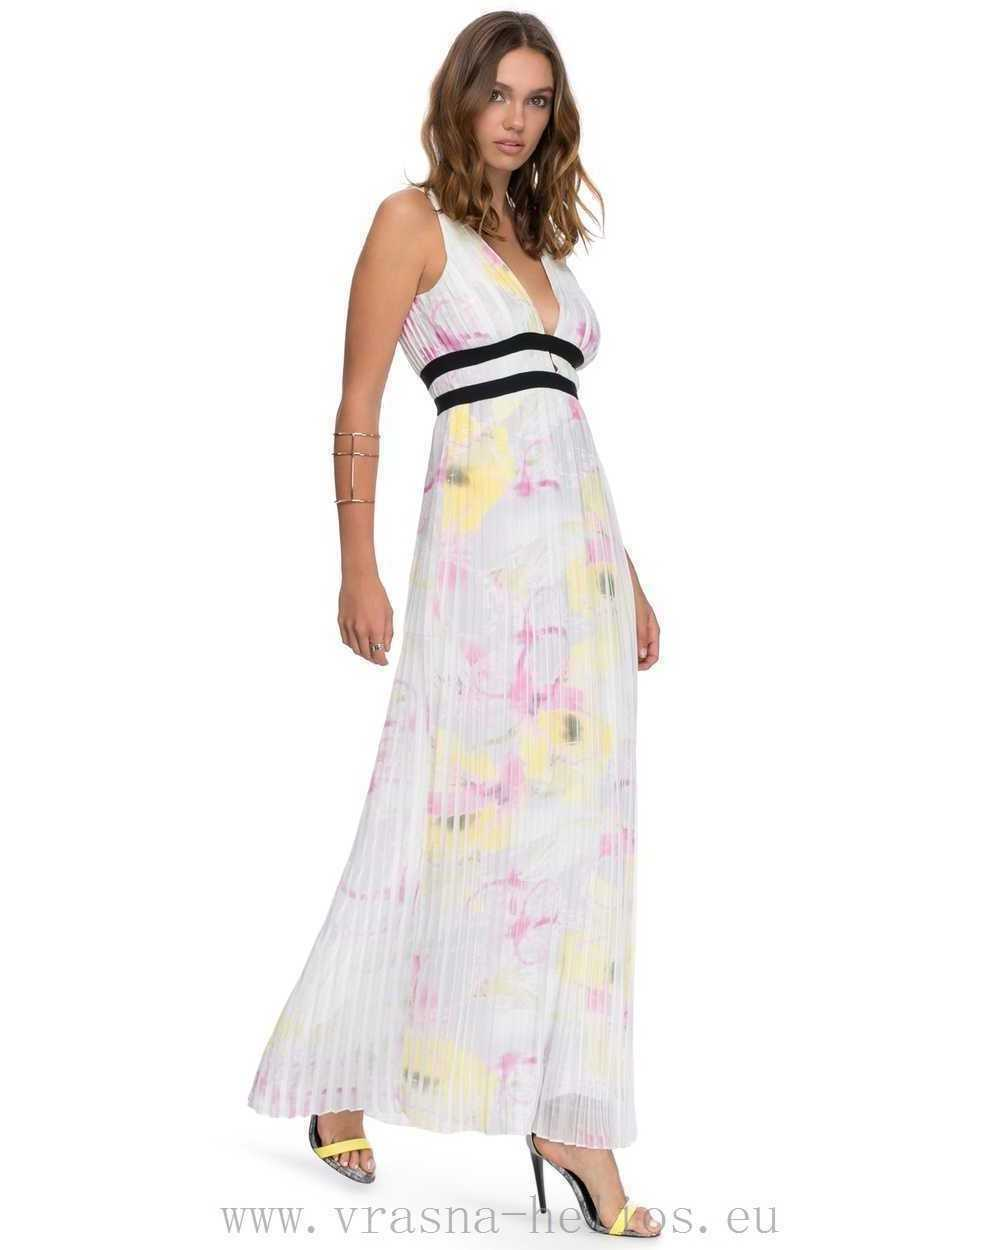 BNWT RIVER ISLAND WATERCOLOUR PRINT PLEATED MAXI DRESS SIZE 12 STUNNING RRP